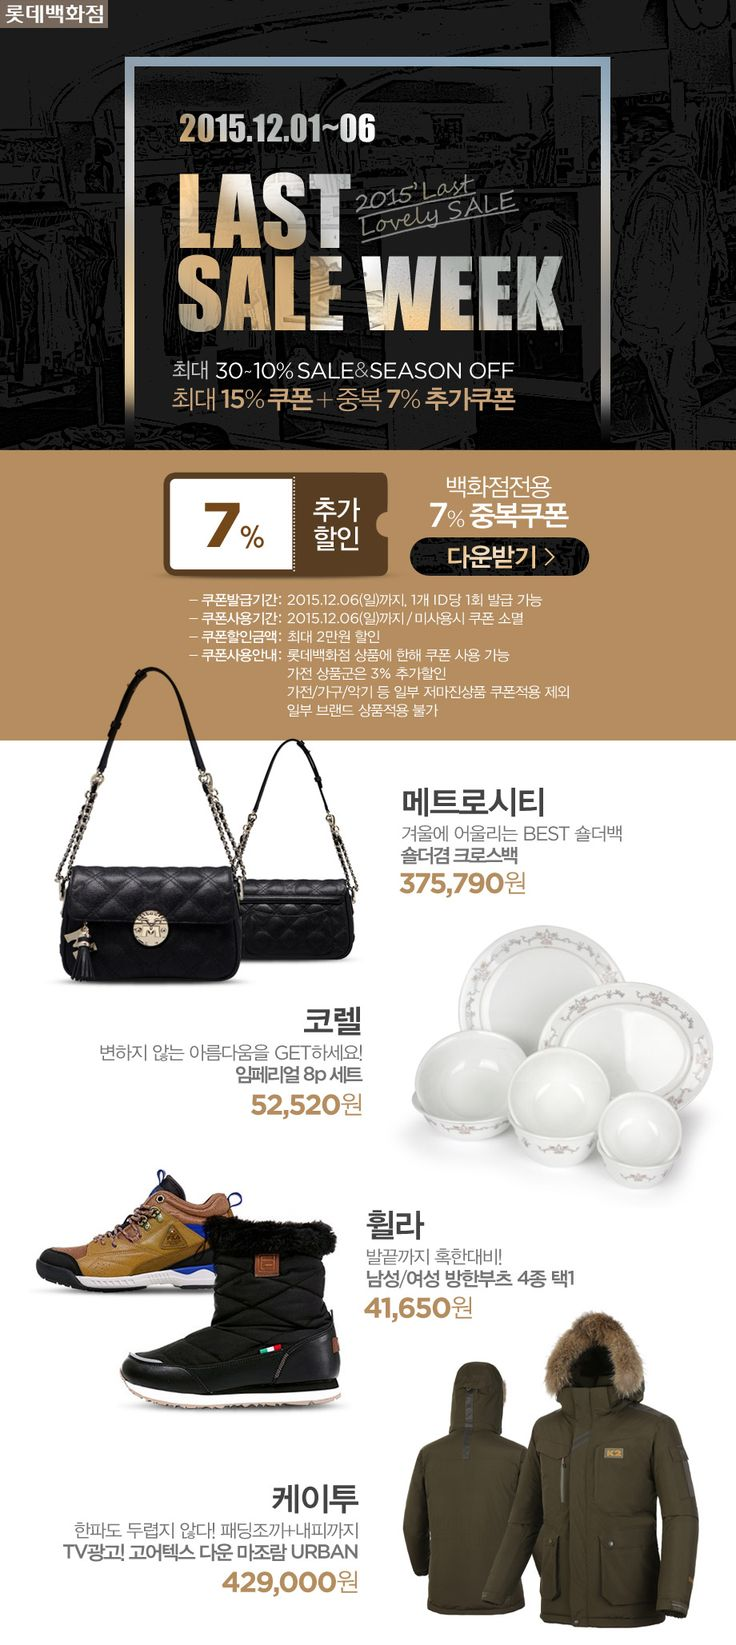 [롯데백화점] 2015 LAST SHOPPING WEEK Designed by 문단샘